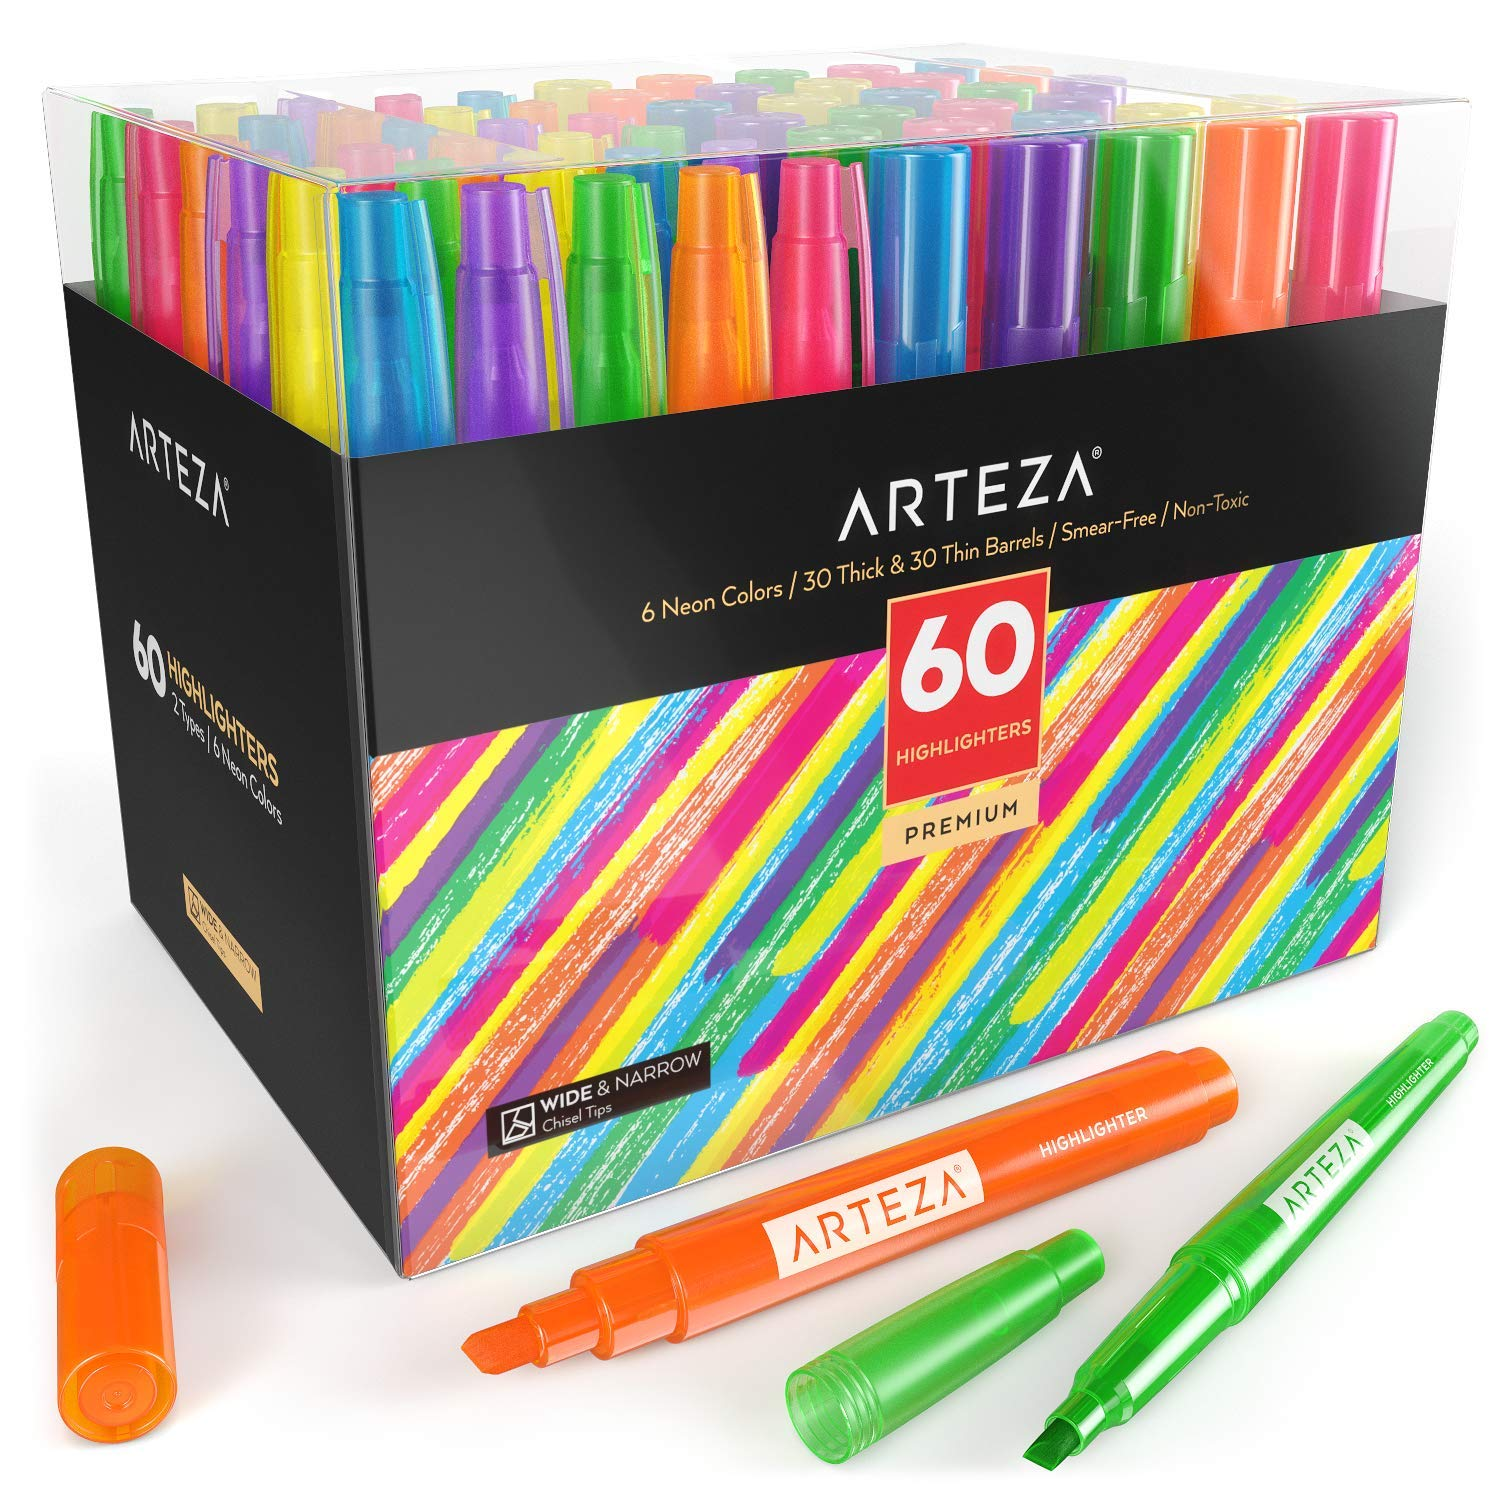 Arteza Highlighters Set of 60, Bulk Pack of Colored Markers, Wide and Narrow Chisel Tips, 6 Assorted Neon Colors, for Adults & Kids by ARTEZA (Image #1)